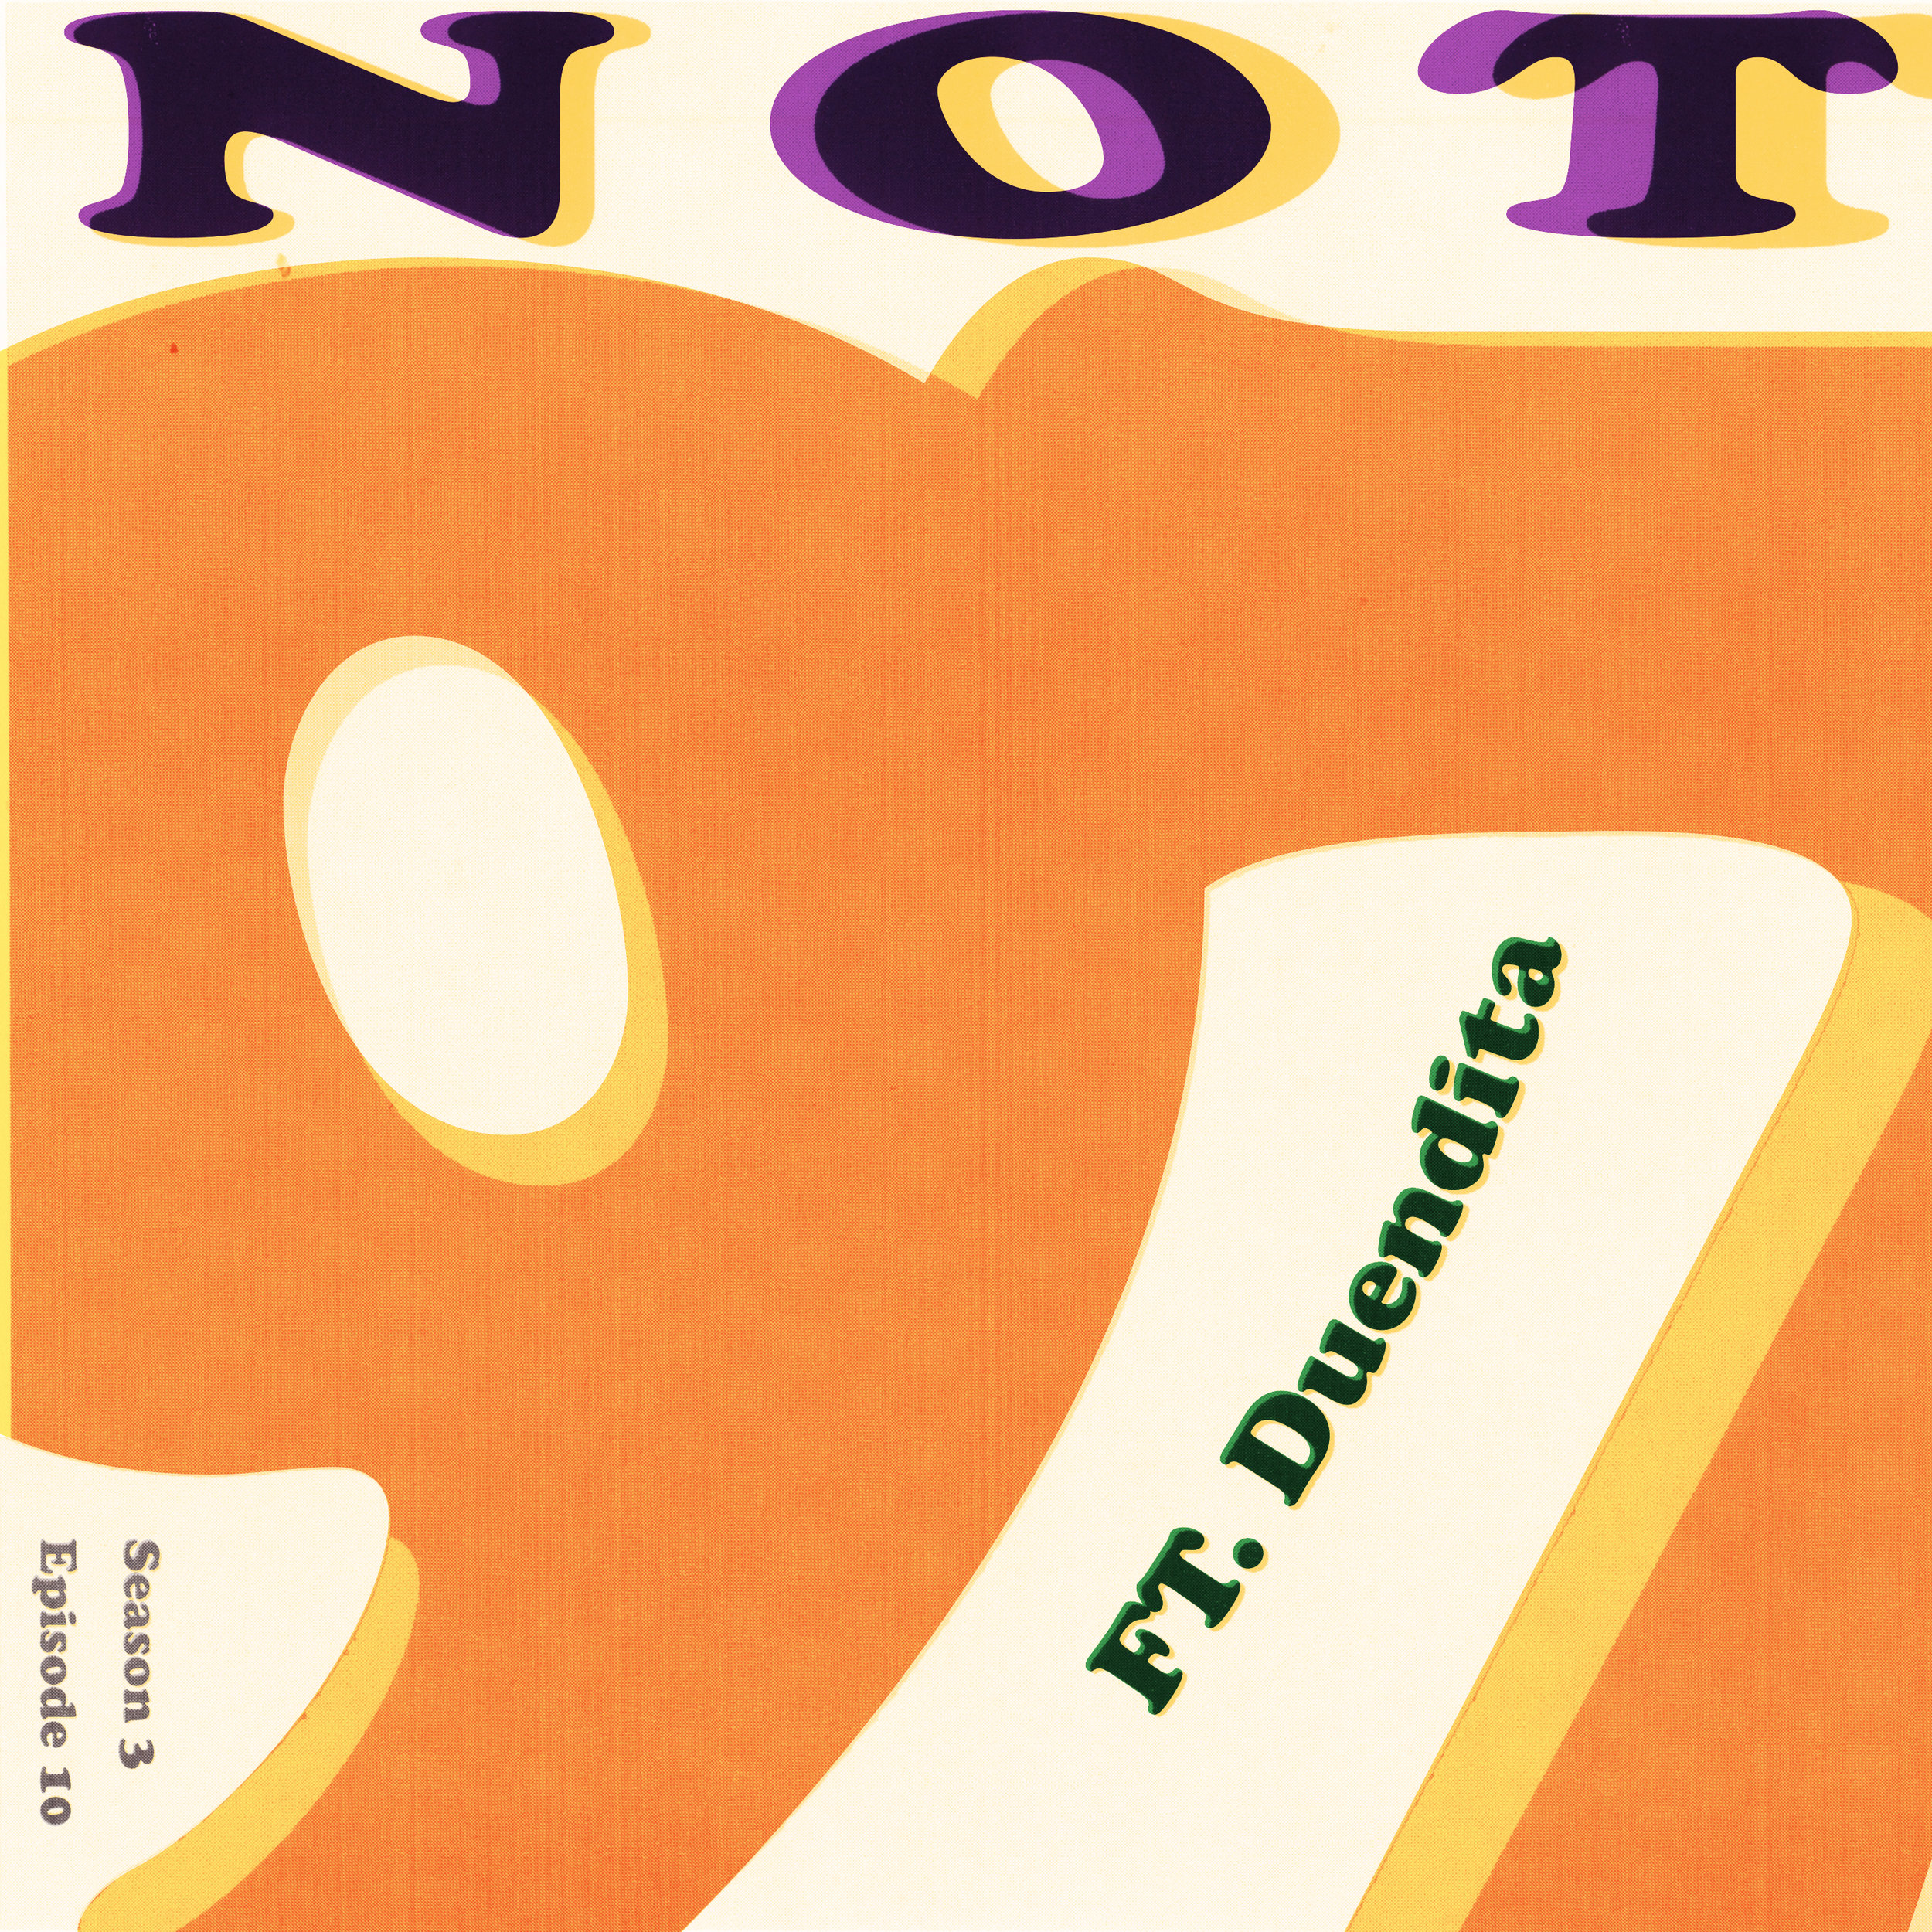 Not97_Working_cover_2 (2).jpg